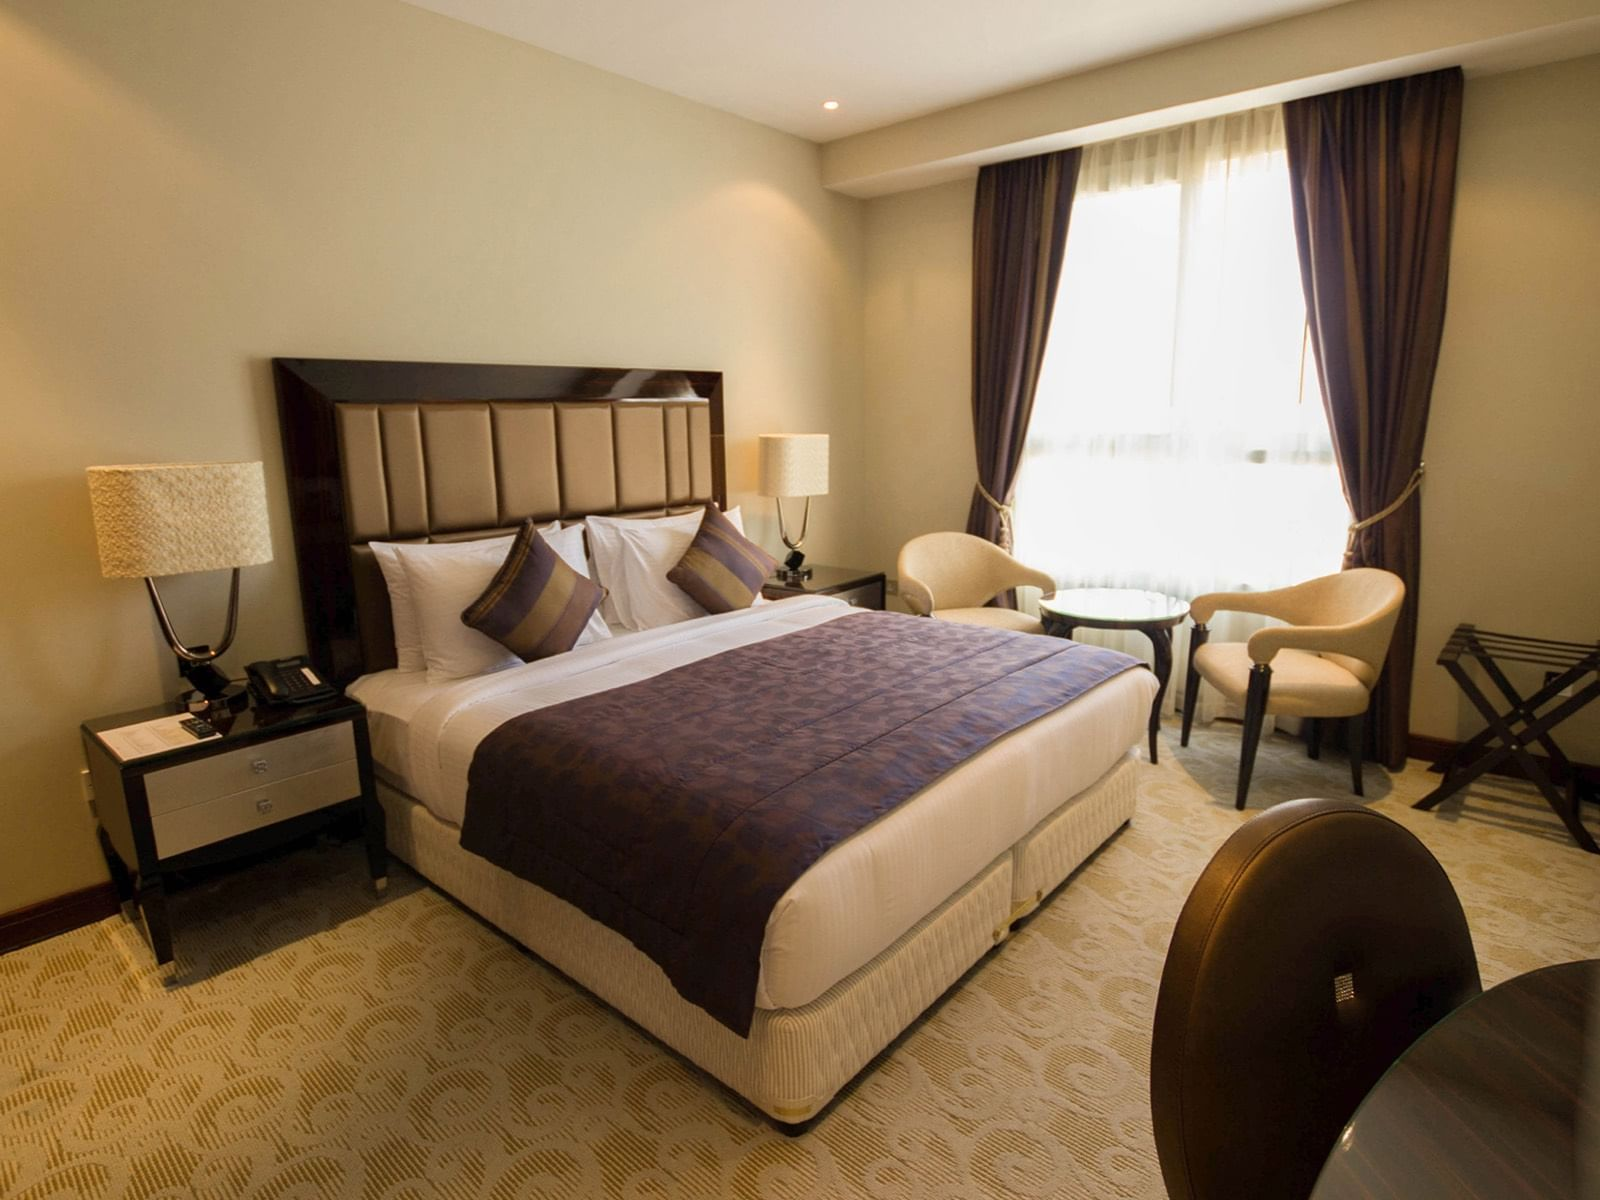 Deluxe Room Desk side at Strato Hotel by Warwick